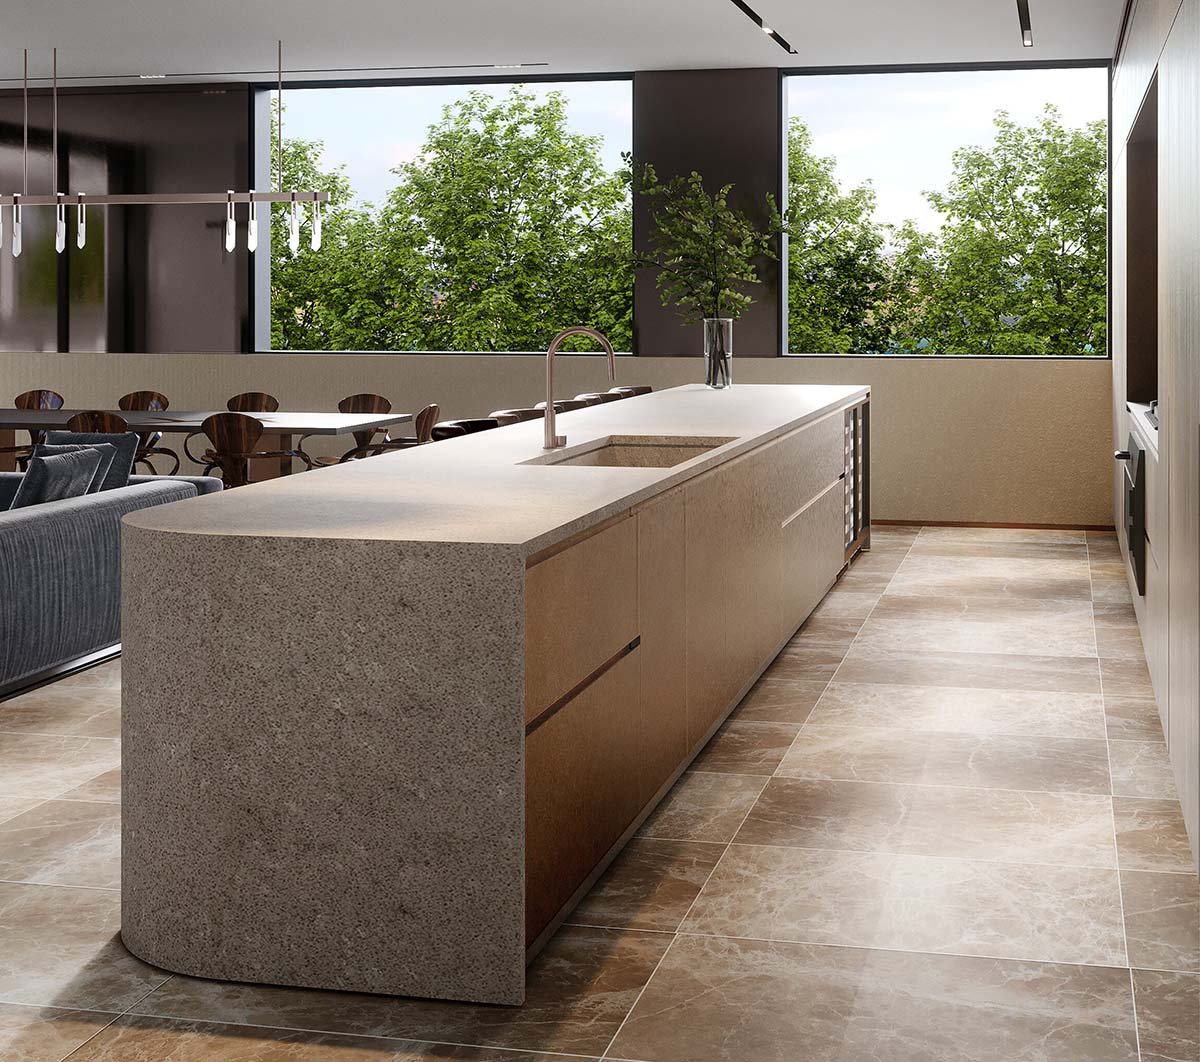 kitchen and bench top made of Caesarstone